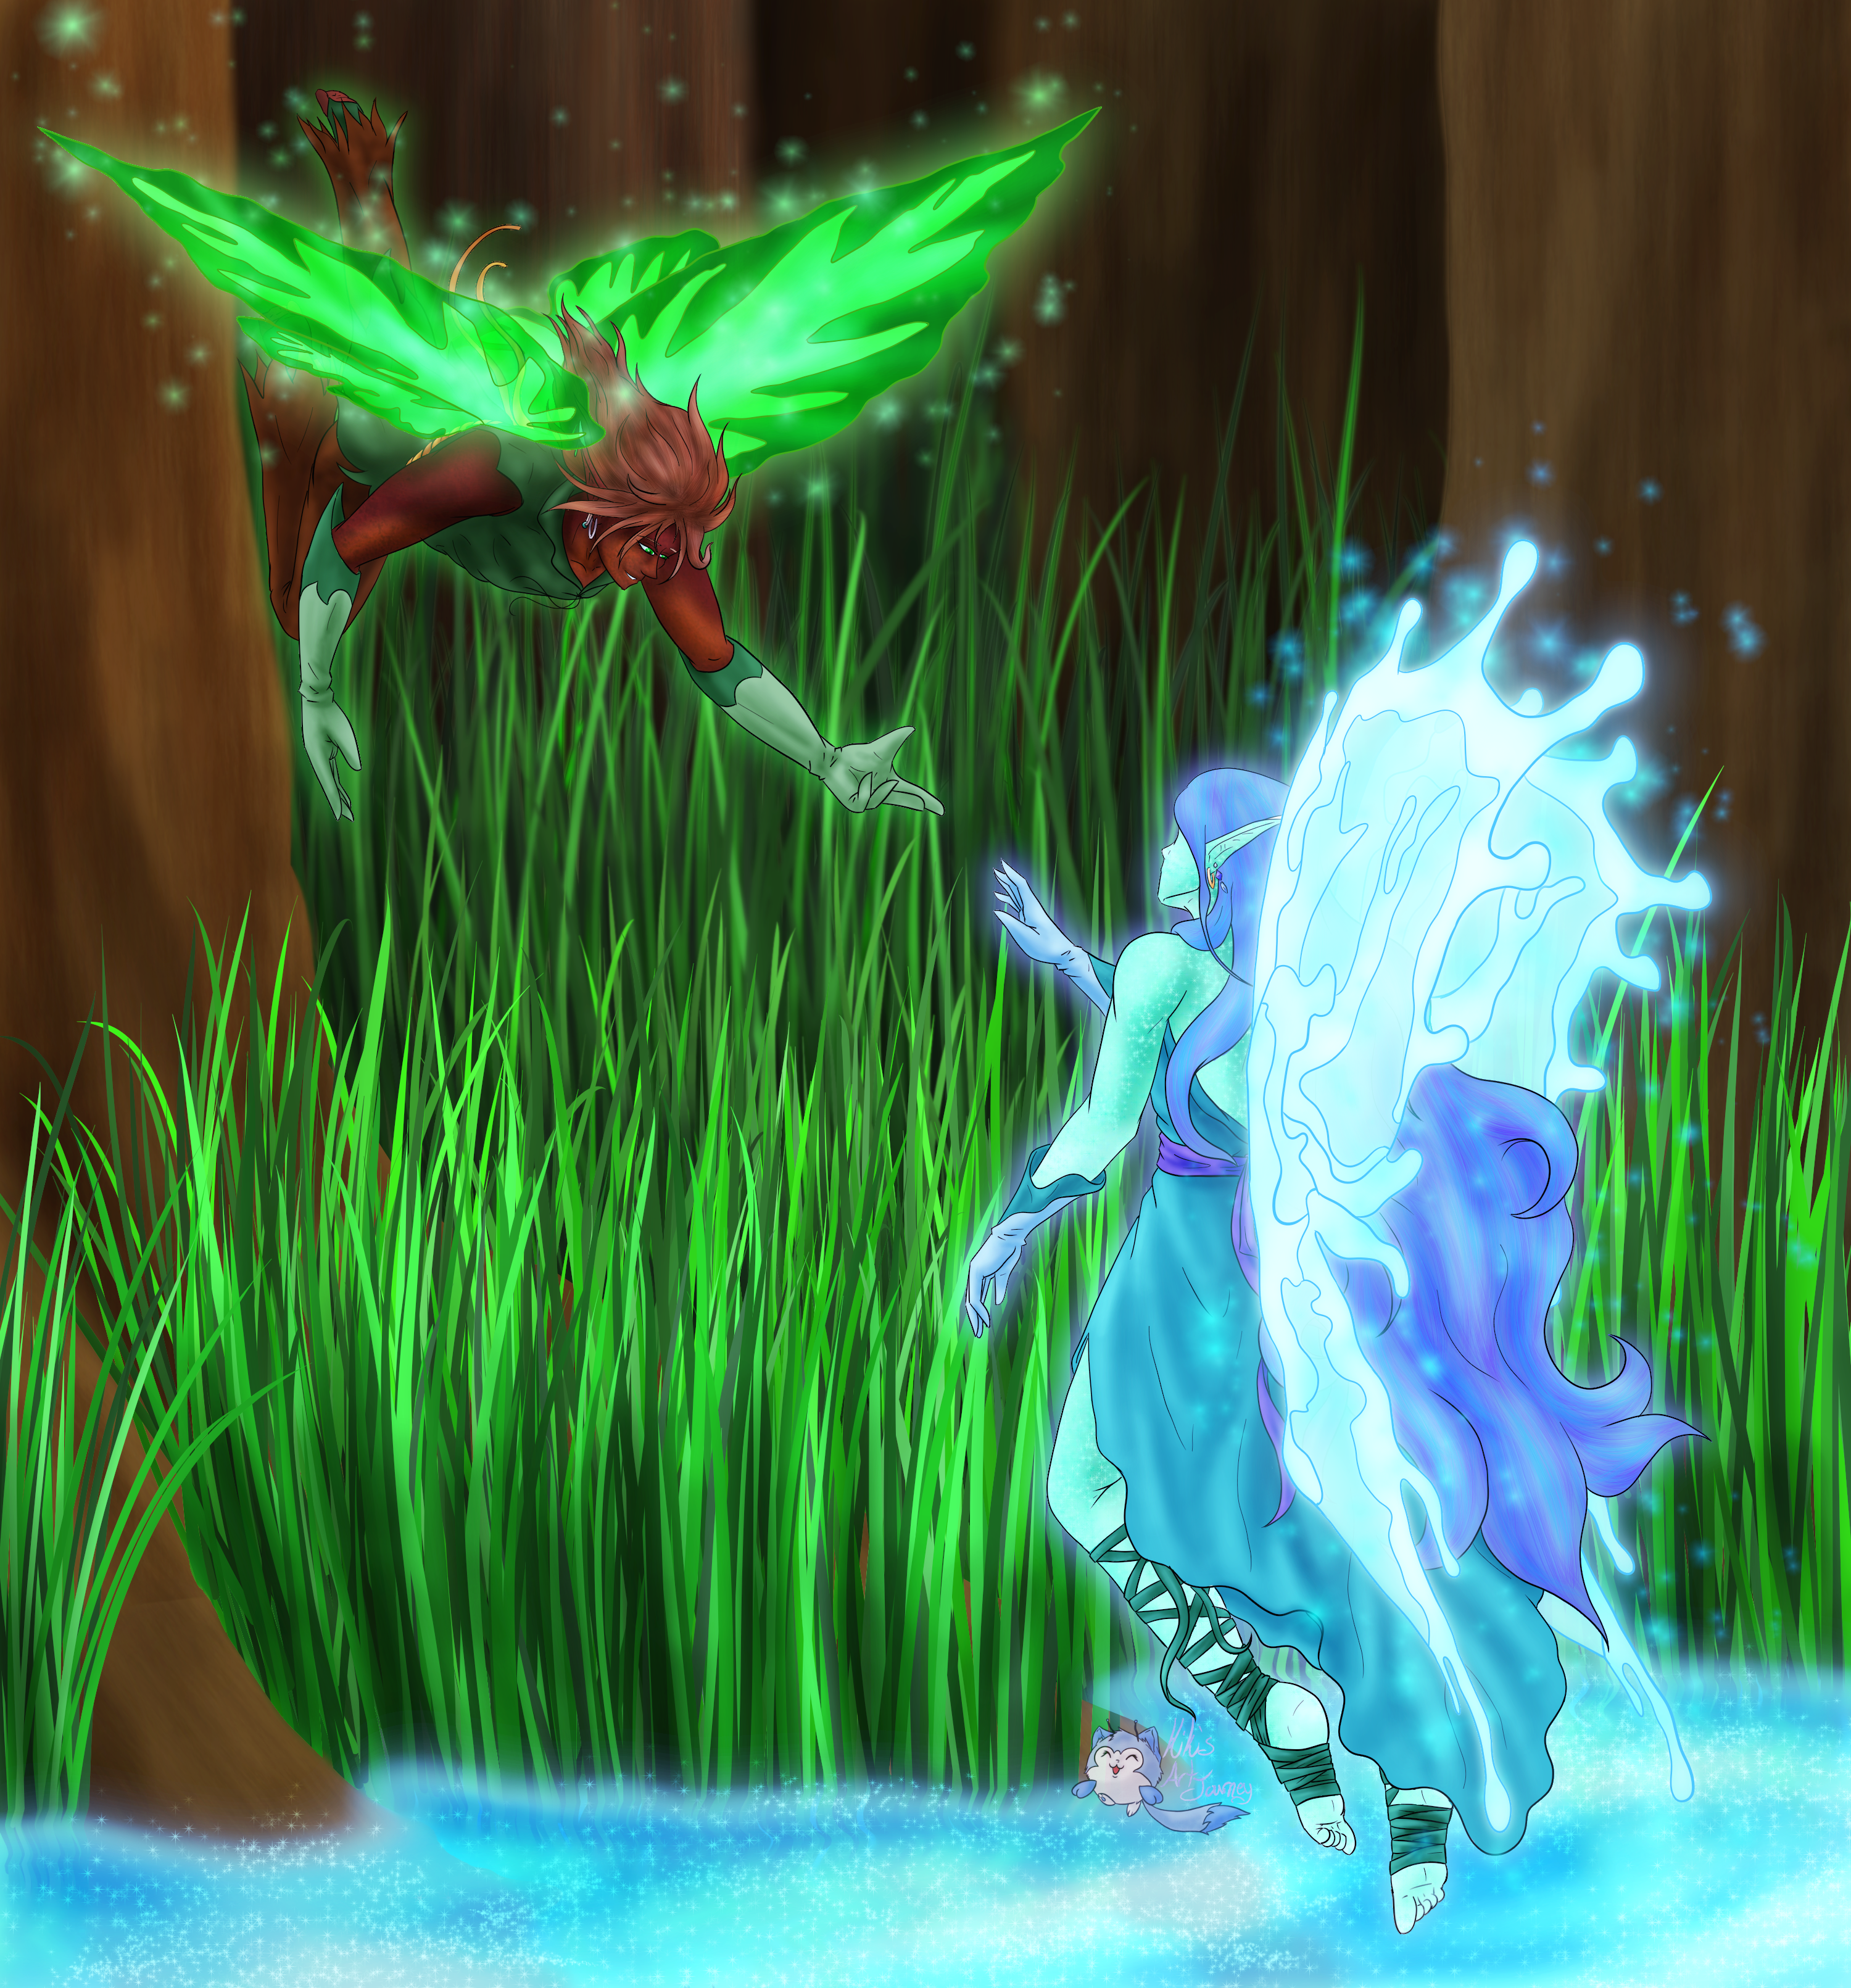 In To the Past - Remaking Fairy Art